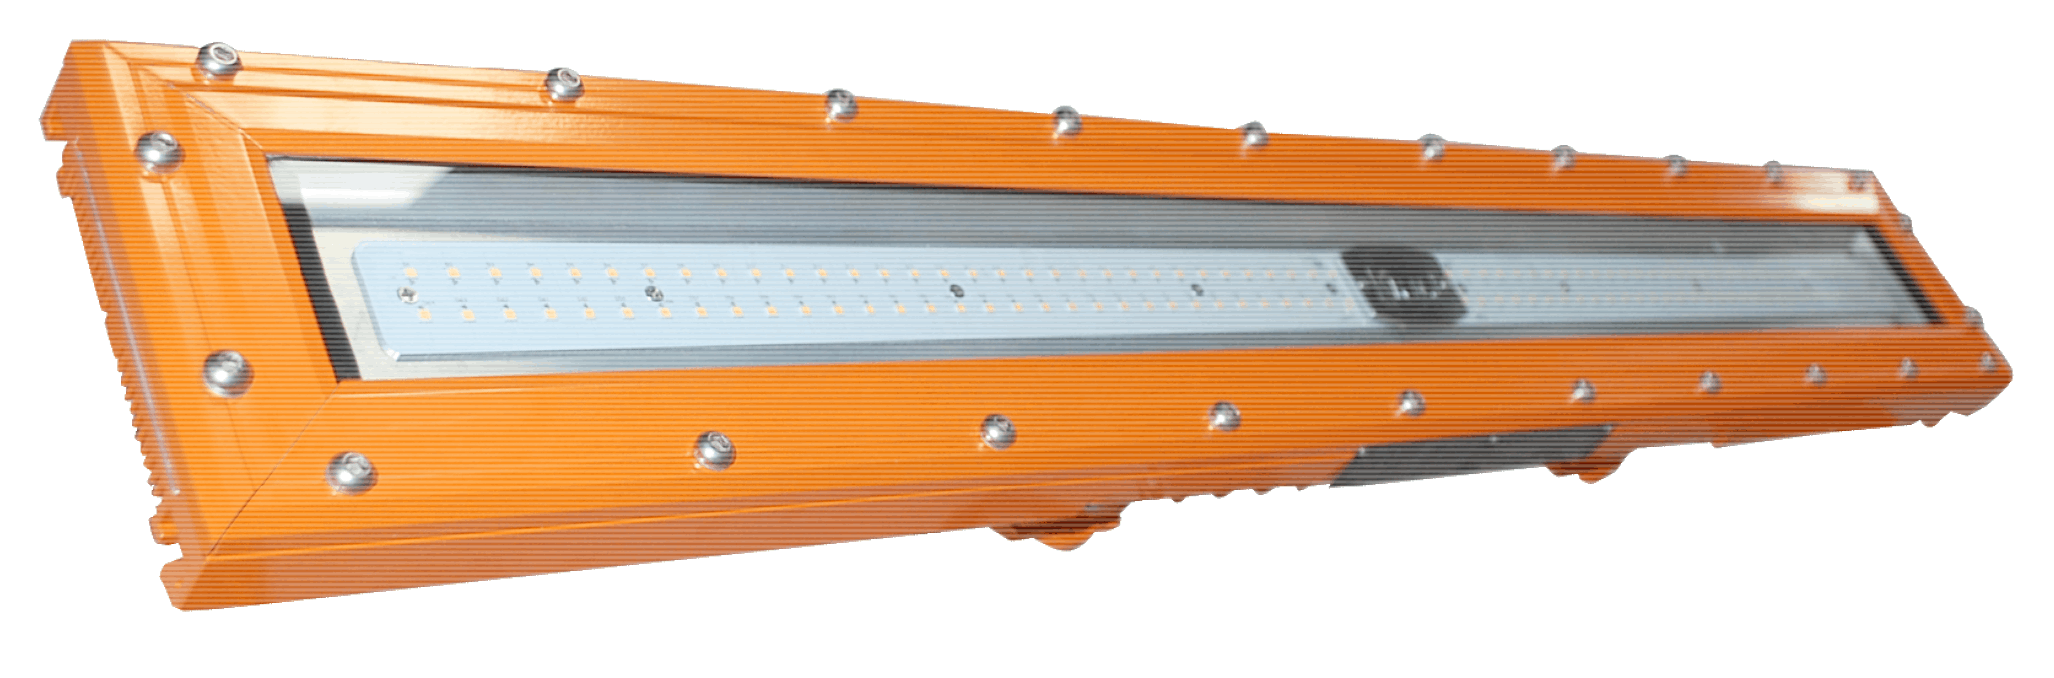 Ex-KSF721200 ATEX LED Lighting Swordfish 72W